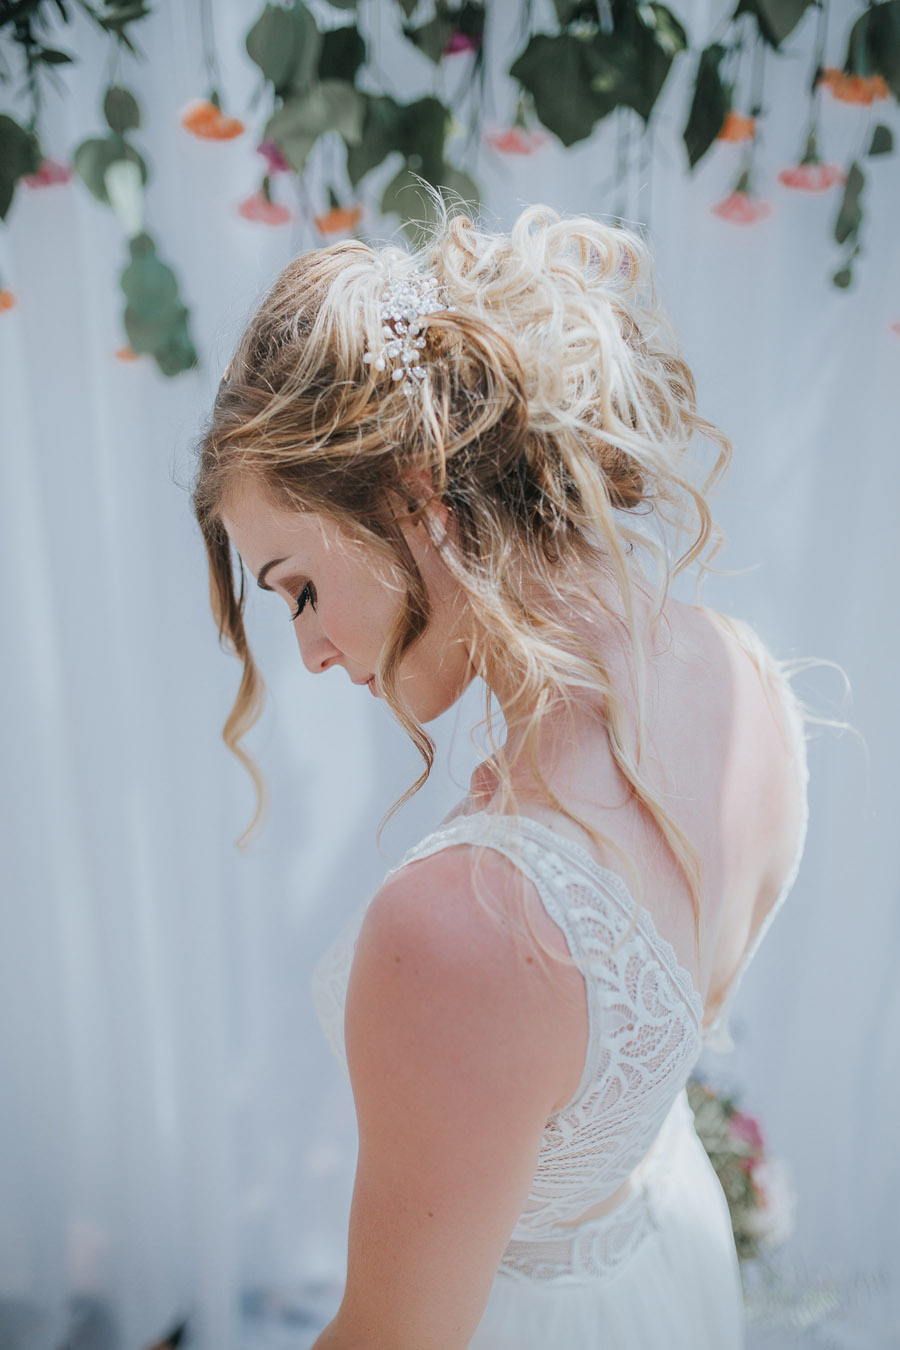 Bright, whimsical, boho wedding styling ideas with balloons, images by Sarah Maria Photography (18)